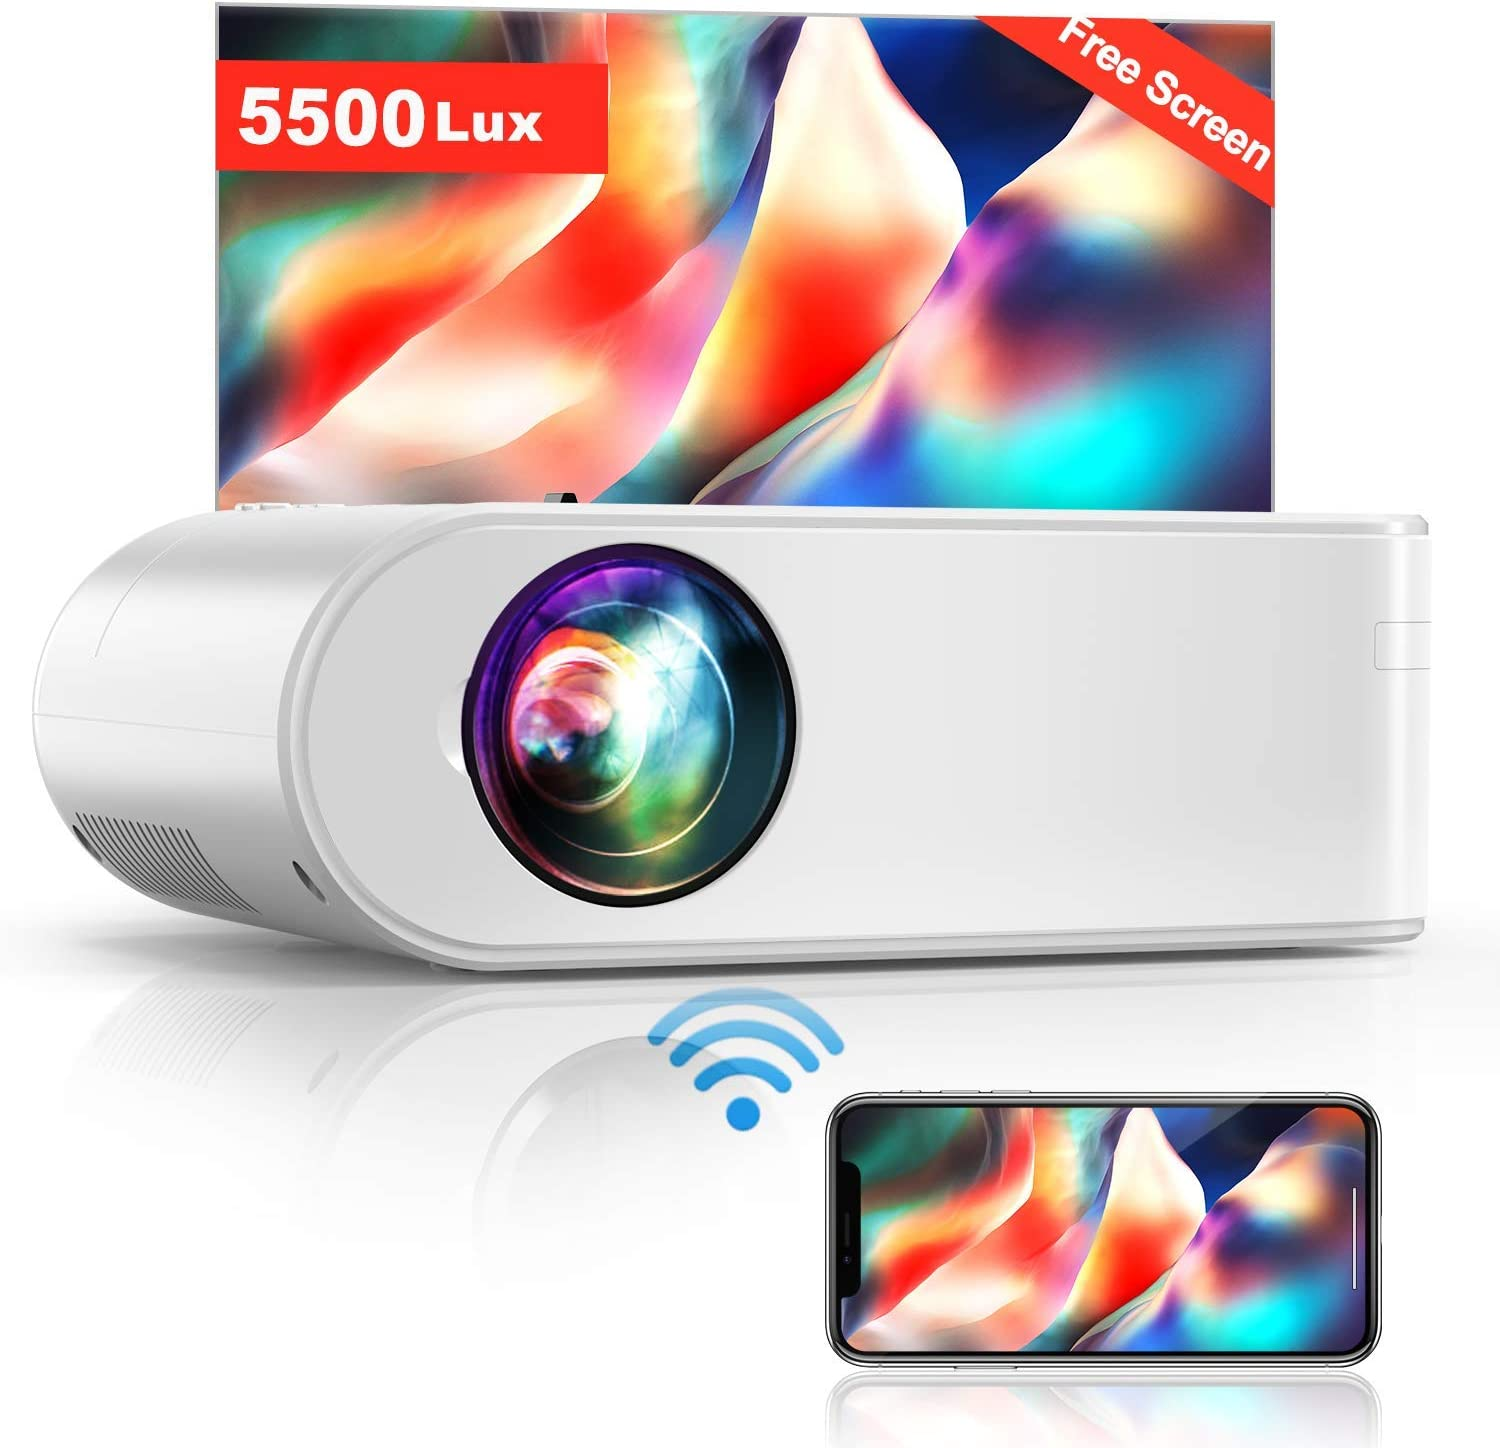 "Projector, YABER V2 WiFi Mini Projector 5500 Lux [Projector Screen Included] Full HD 1080P and 200"" Supported, Portable Wireless Mirroring Projector for iOS/Android/TV Stick/PS4/PC Home & Outdoor"